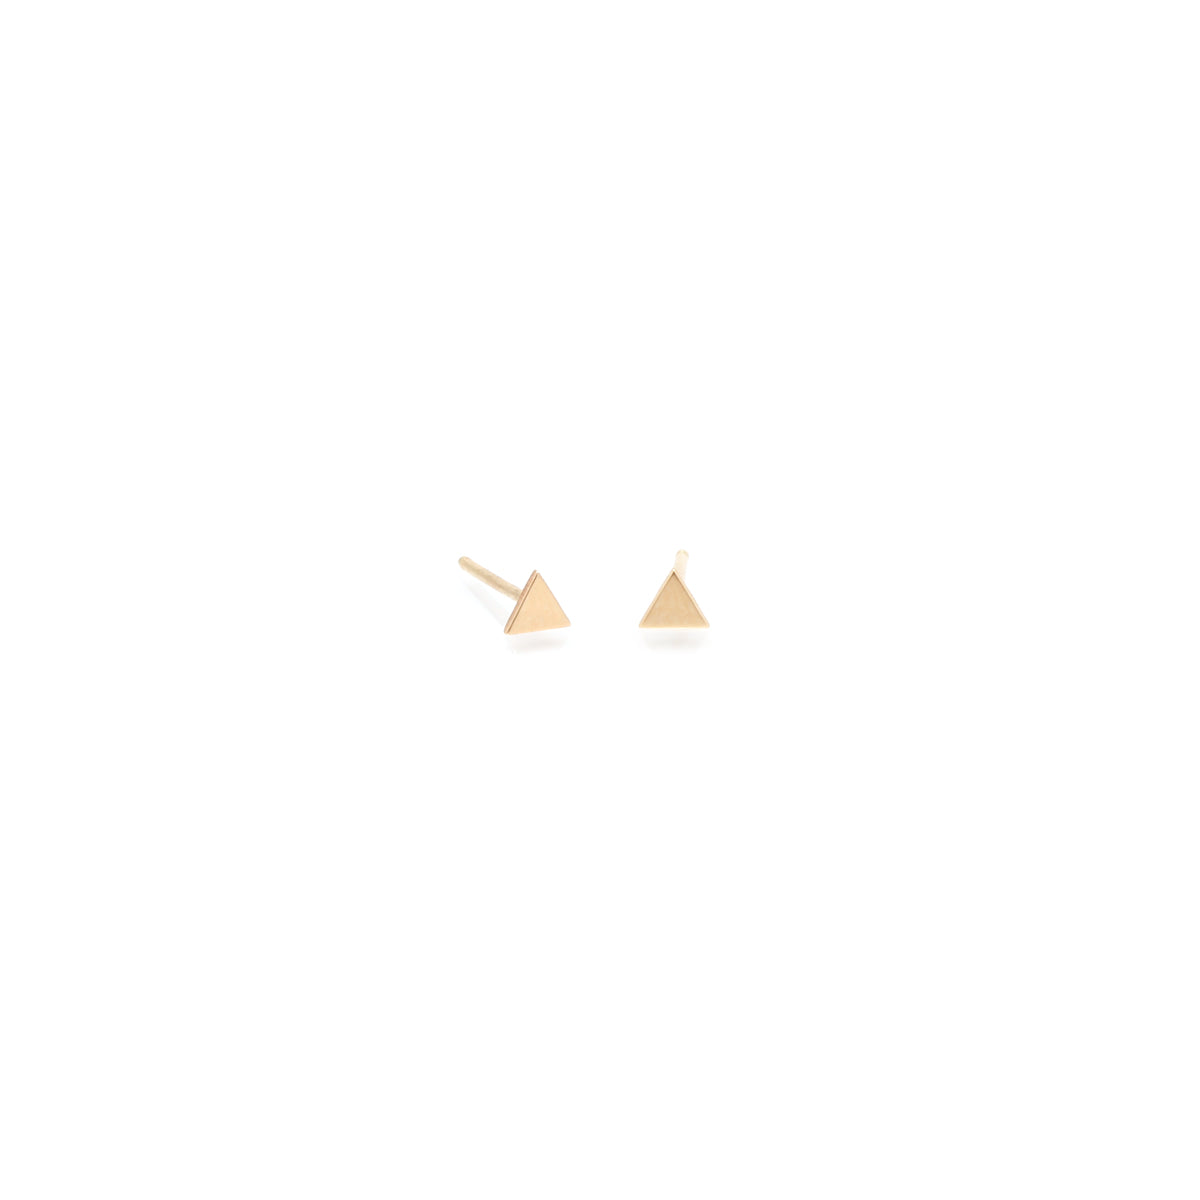 Itty Bitty Triangle Stud